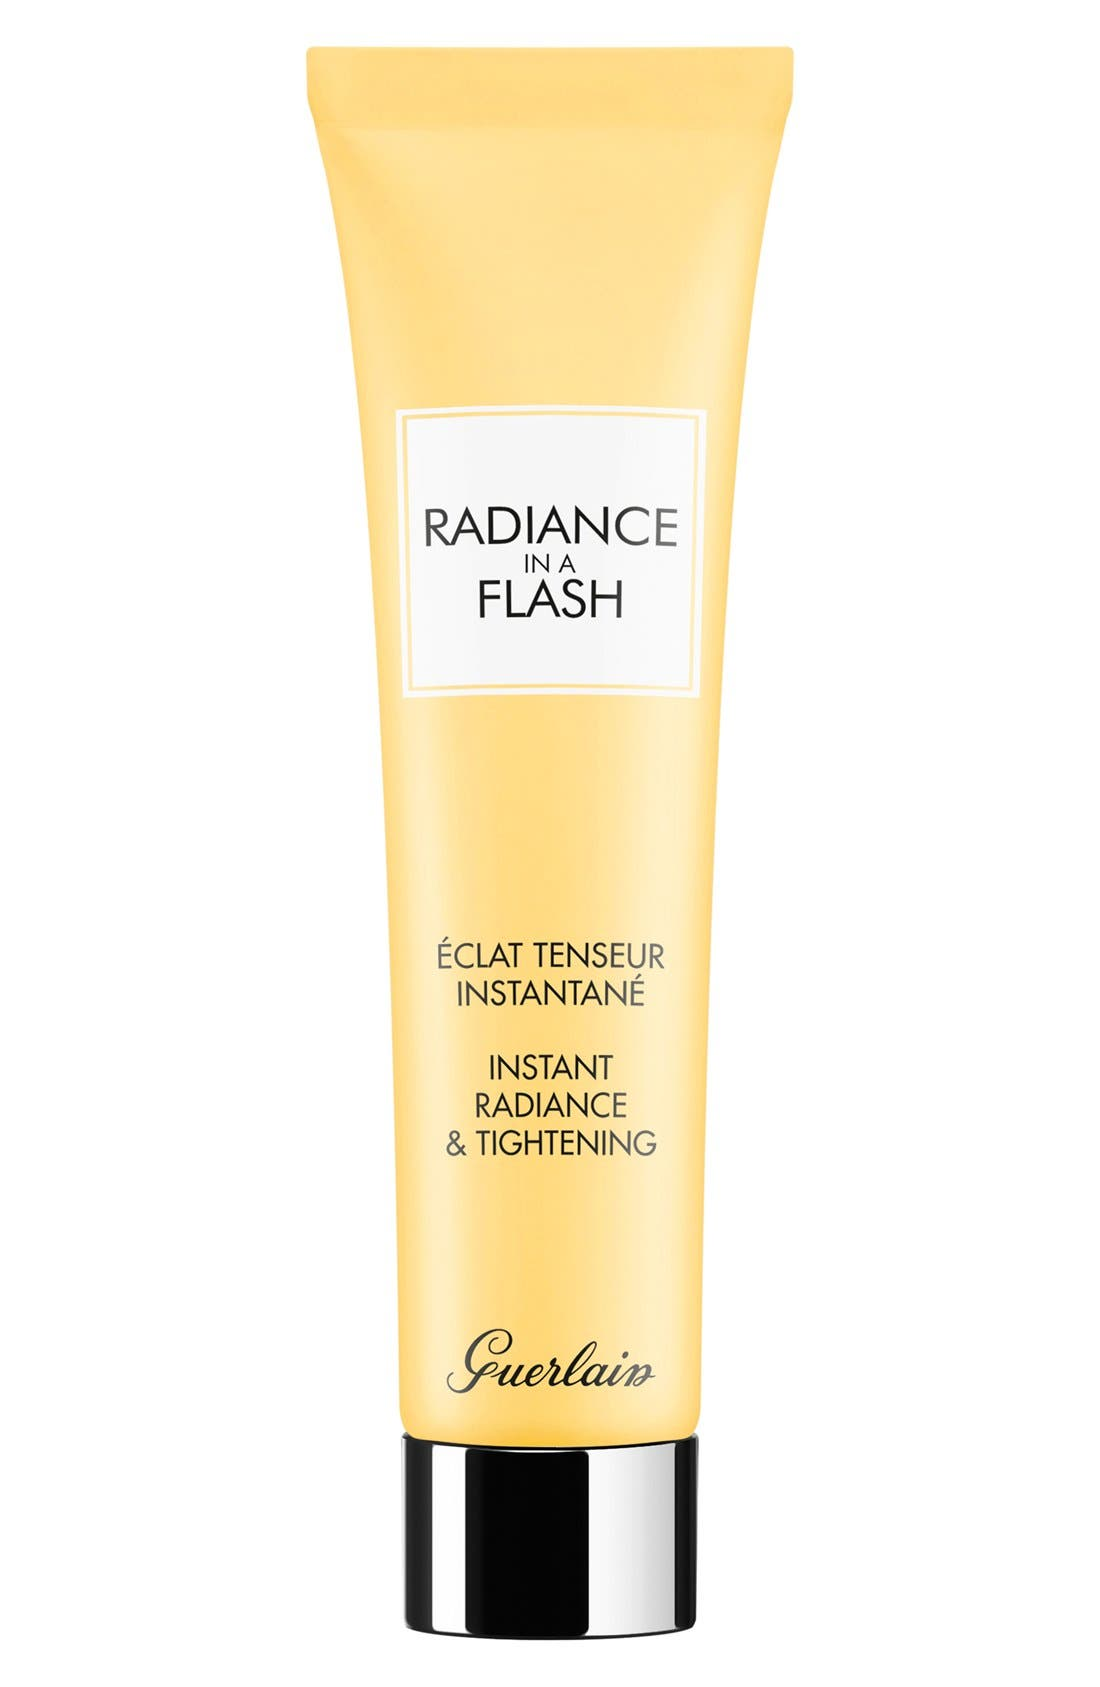 Radiance in a Flash Instant Radiance & Tightening,                             Main thumbnail 1, color,                             NO COLOR